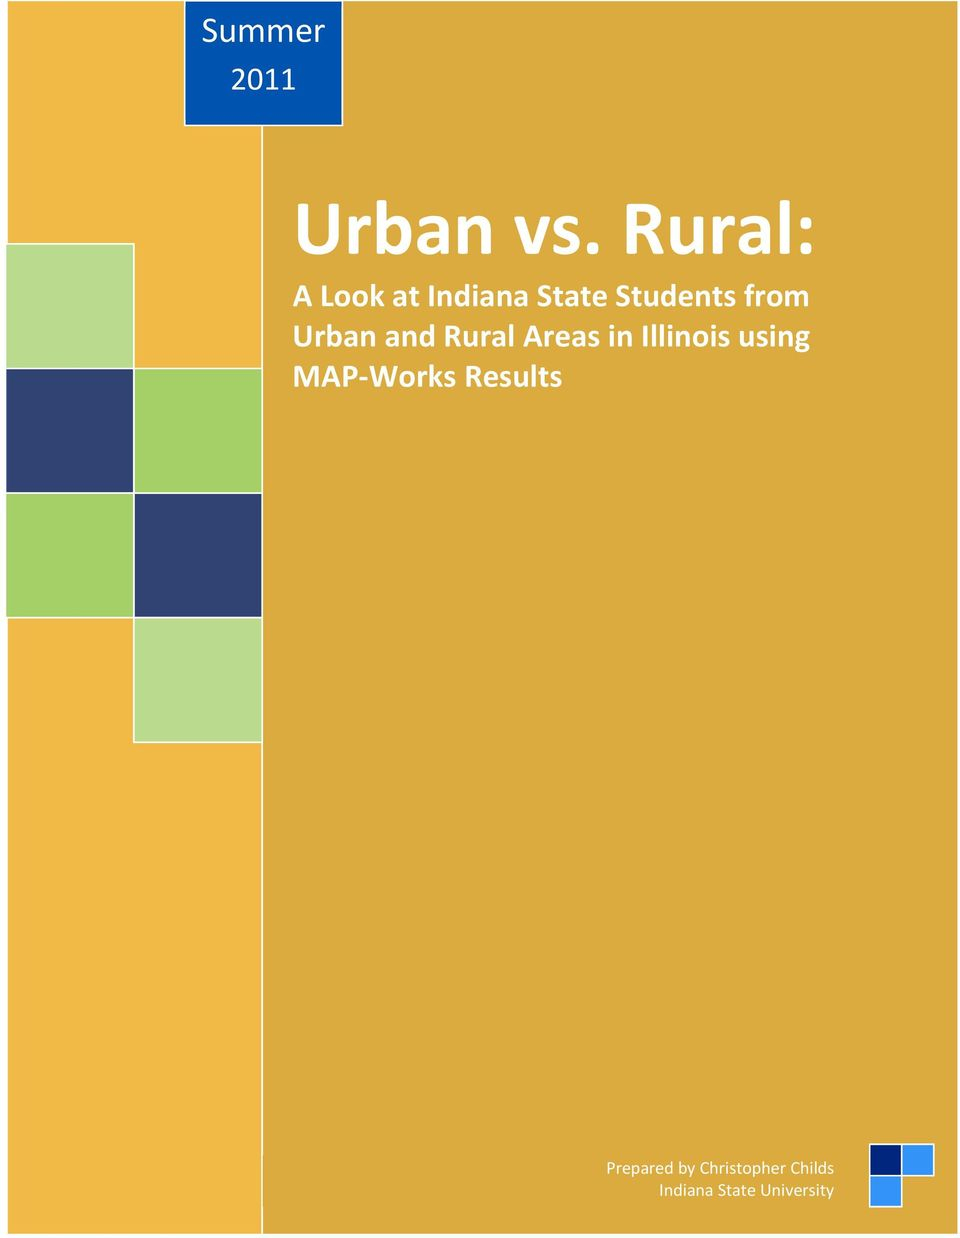 Urban and Rural Areas in Illinois using MAP